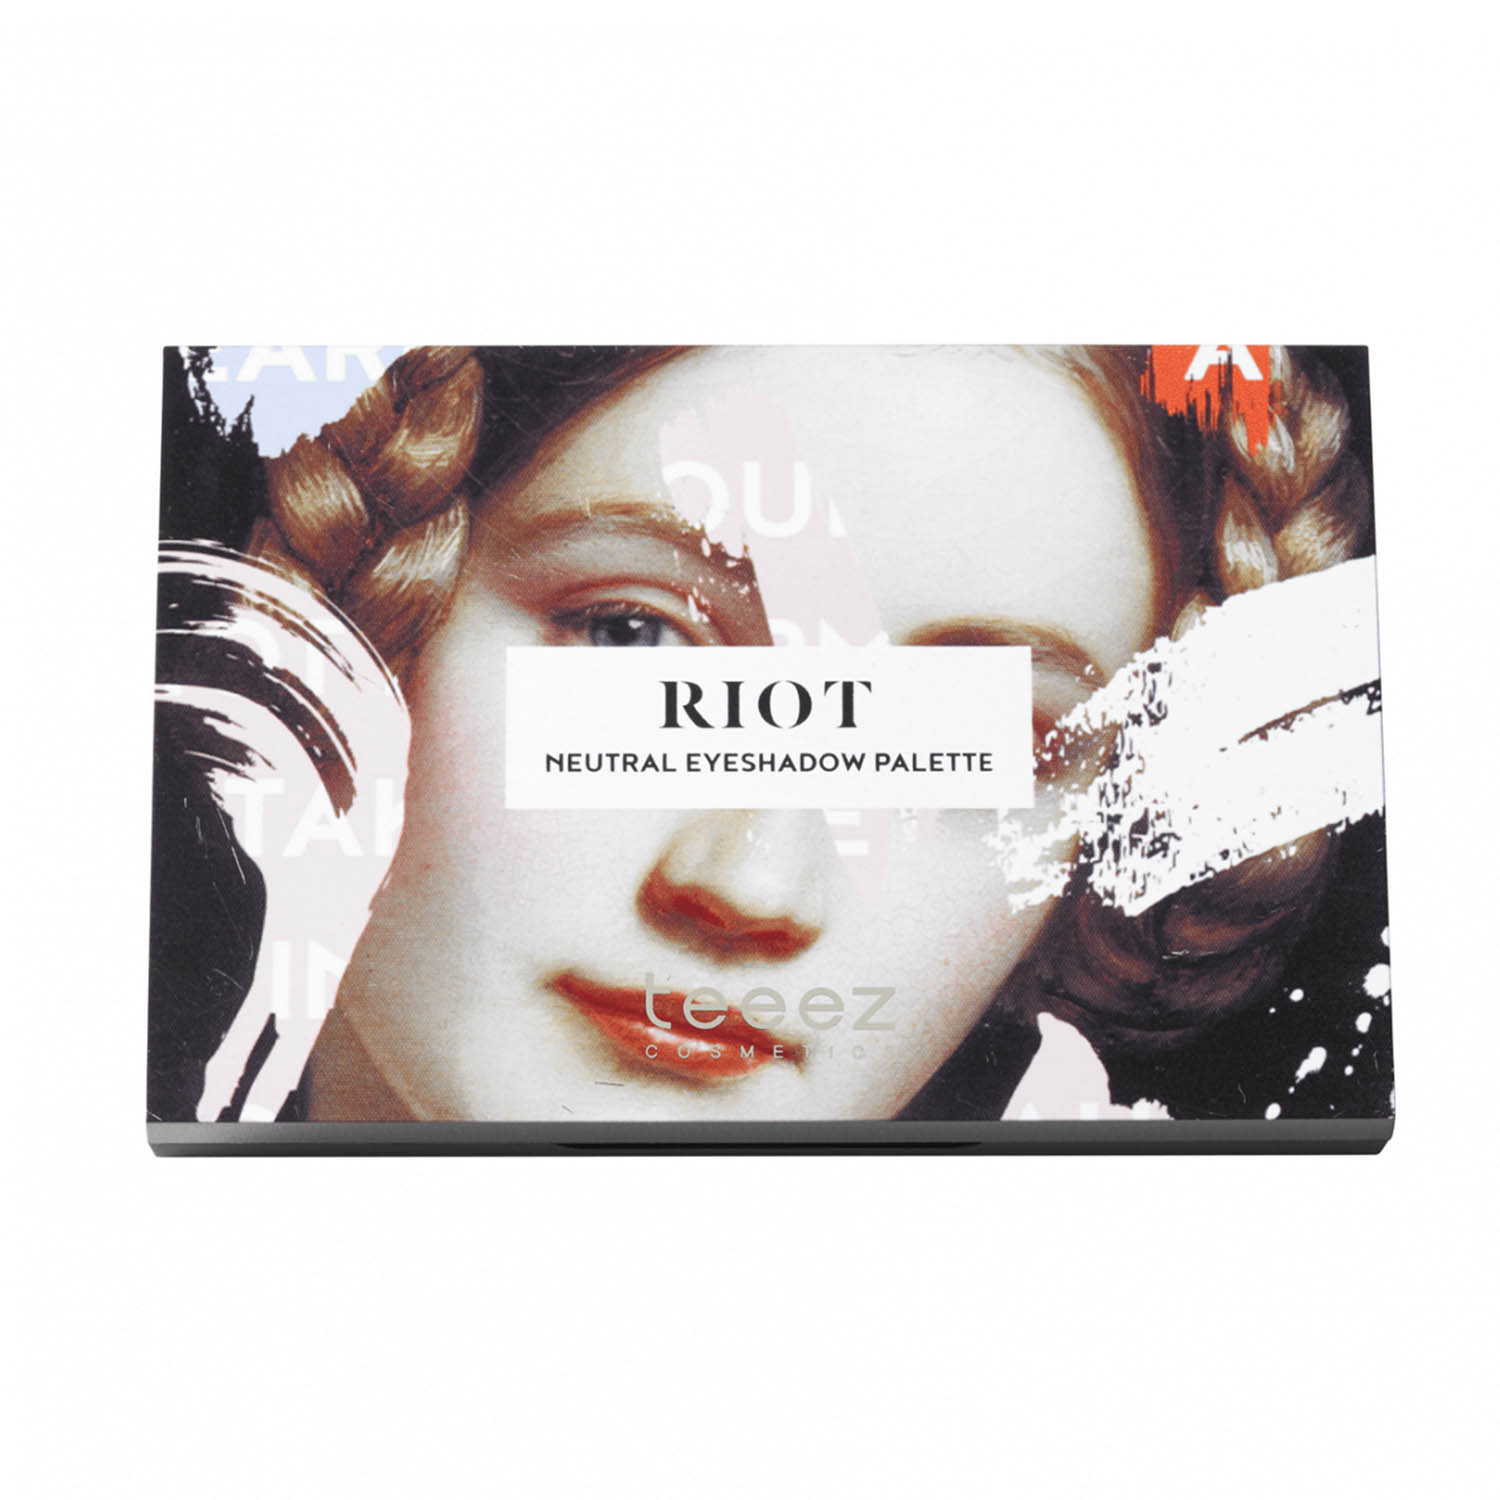 PORTFOLIO_SOCIAL_MEDIA_MARCH4_0037_riot_neutral_eyeshadow_palette_box_closededit_1.jpg